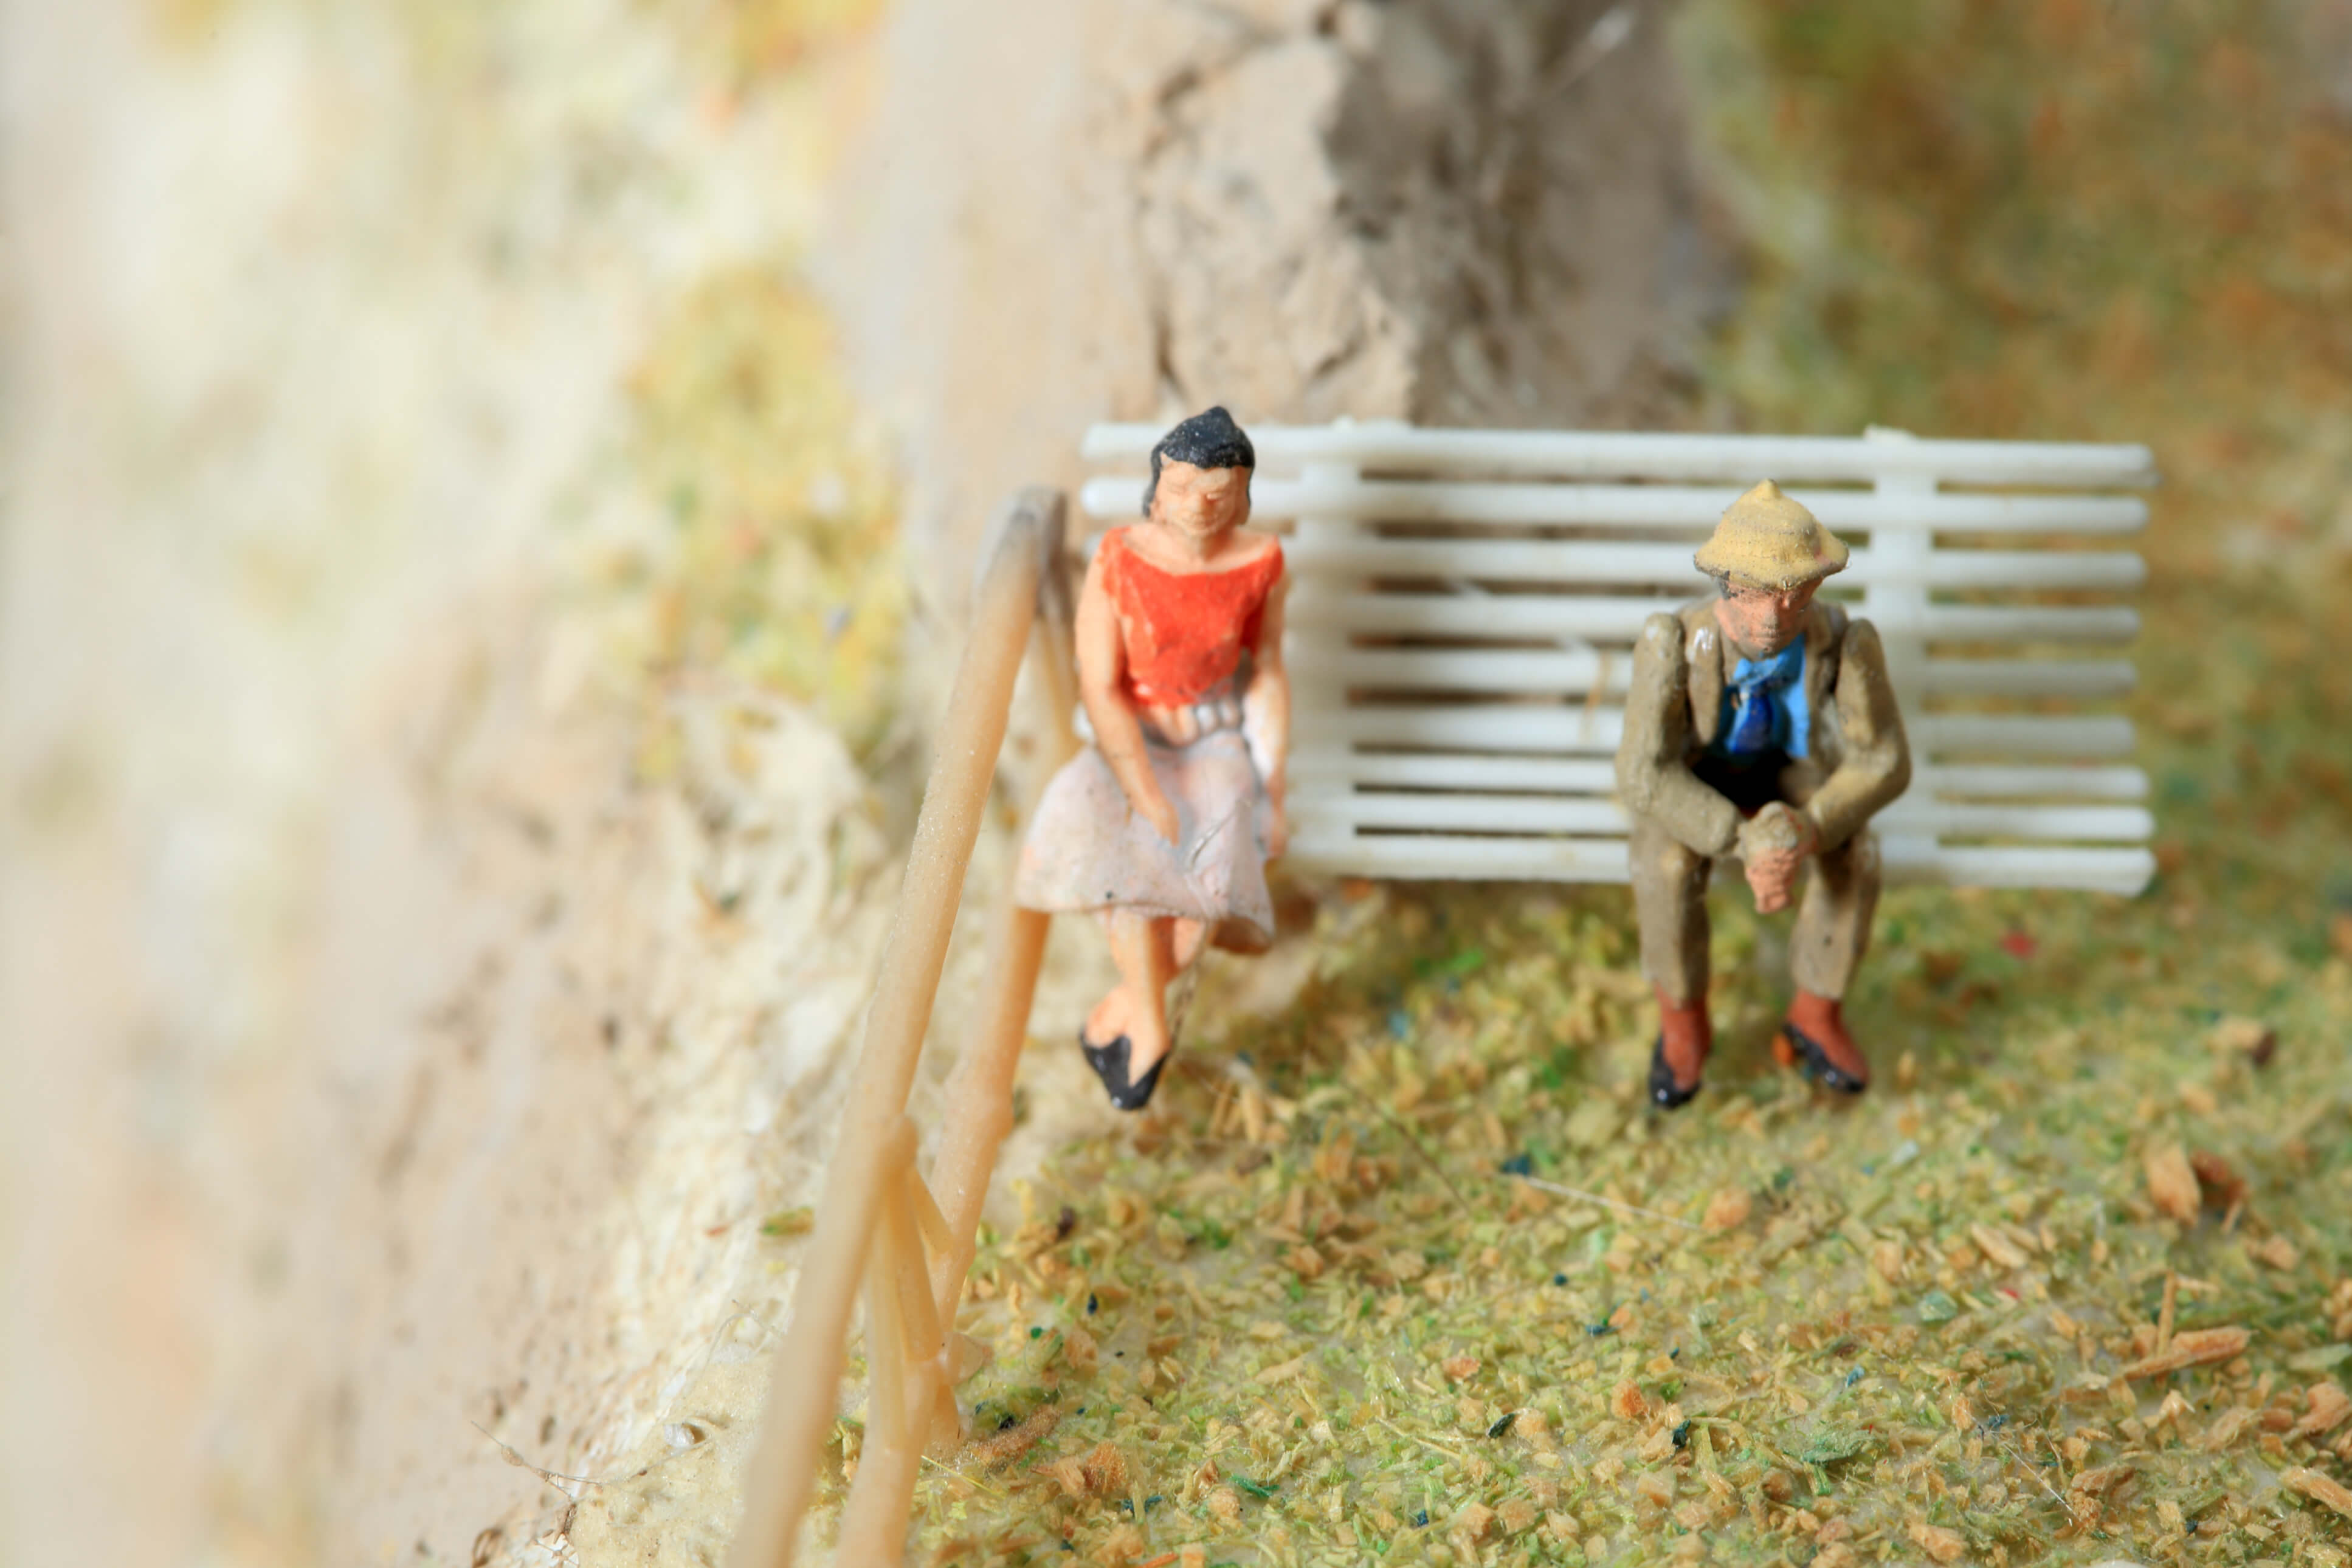 Grounds for Divorce in the UK